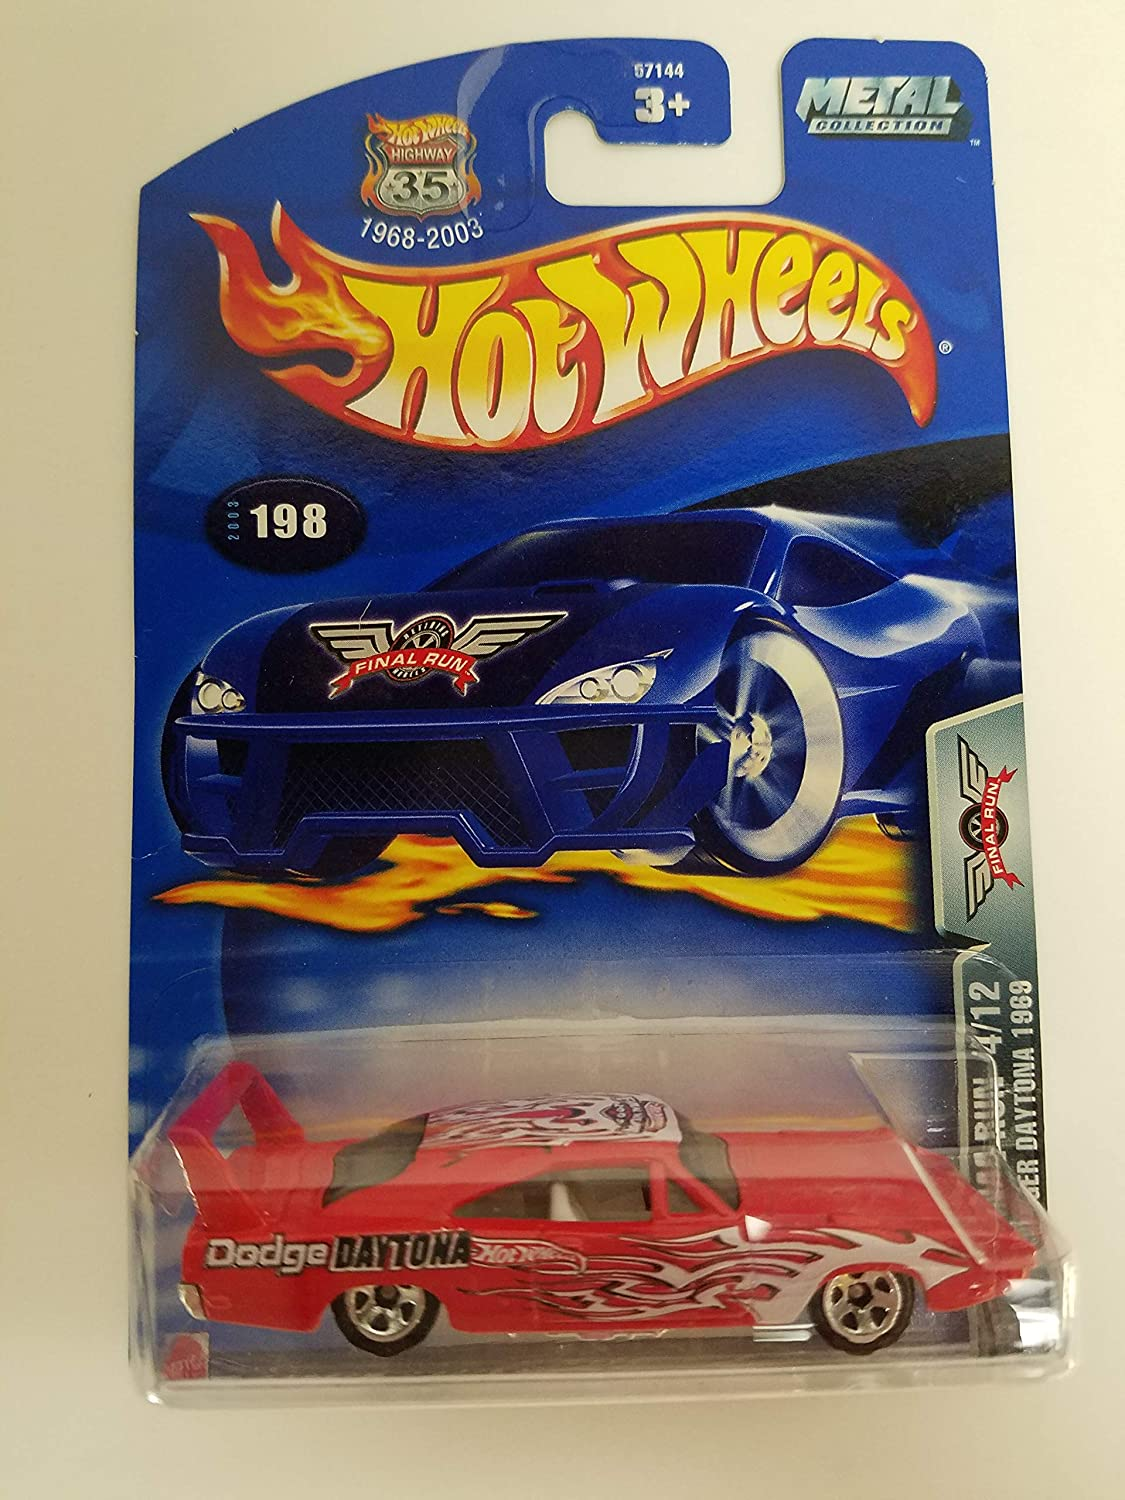 Dodge Charger Daytona 1969 Final Run 4/12 2003 Hot Wheels diecast car No. 198